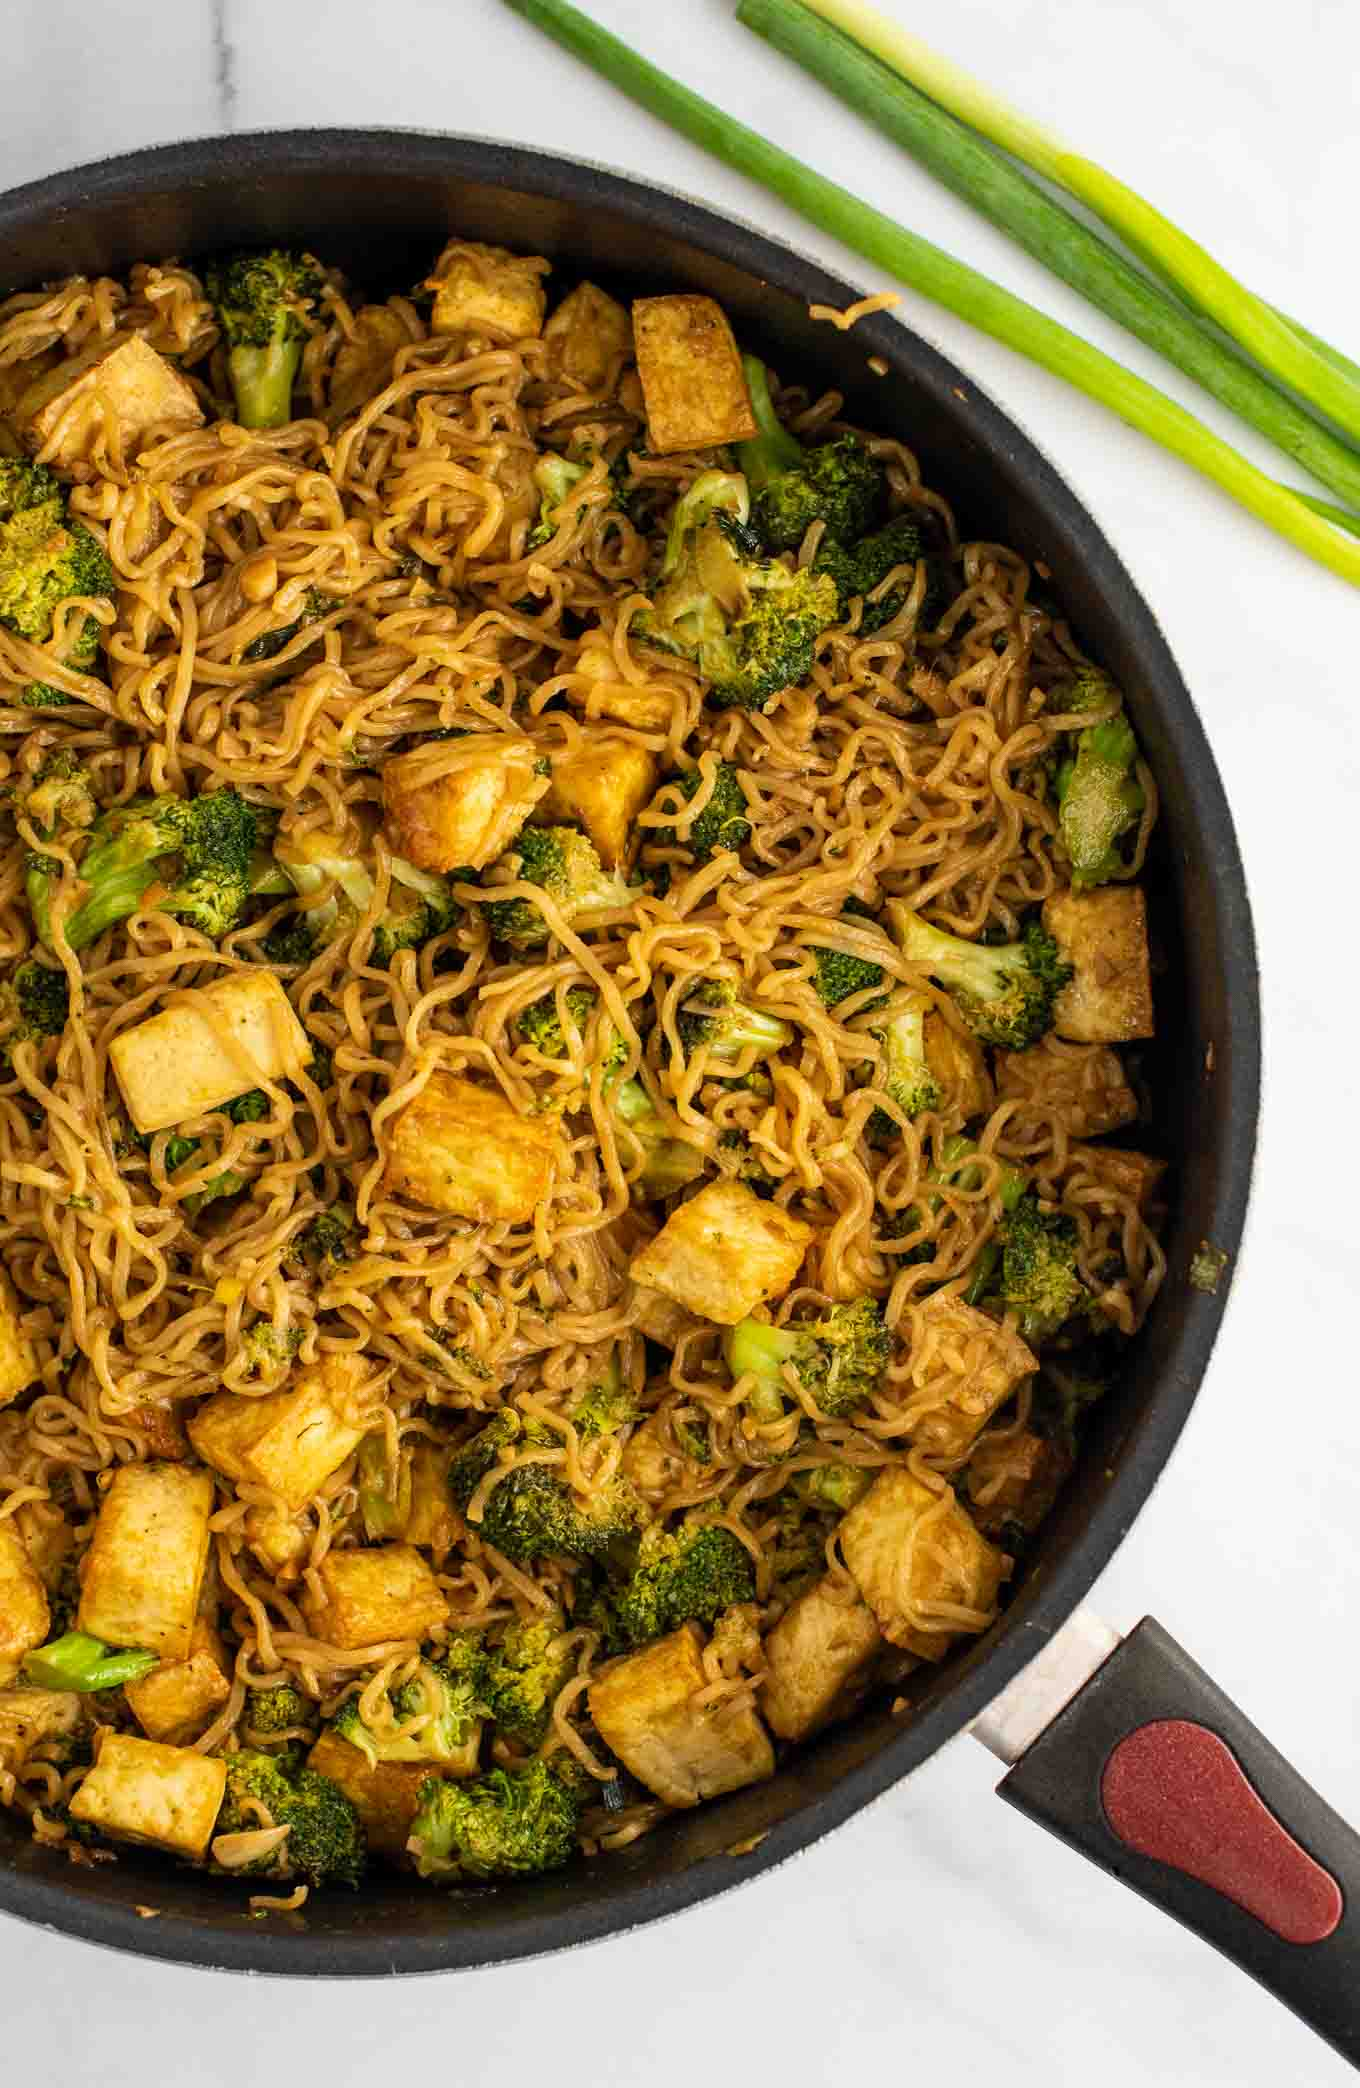 broccoli tofu ramen noodles in a skillet from an overhead view